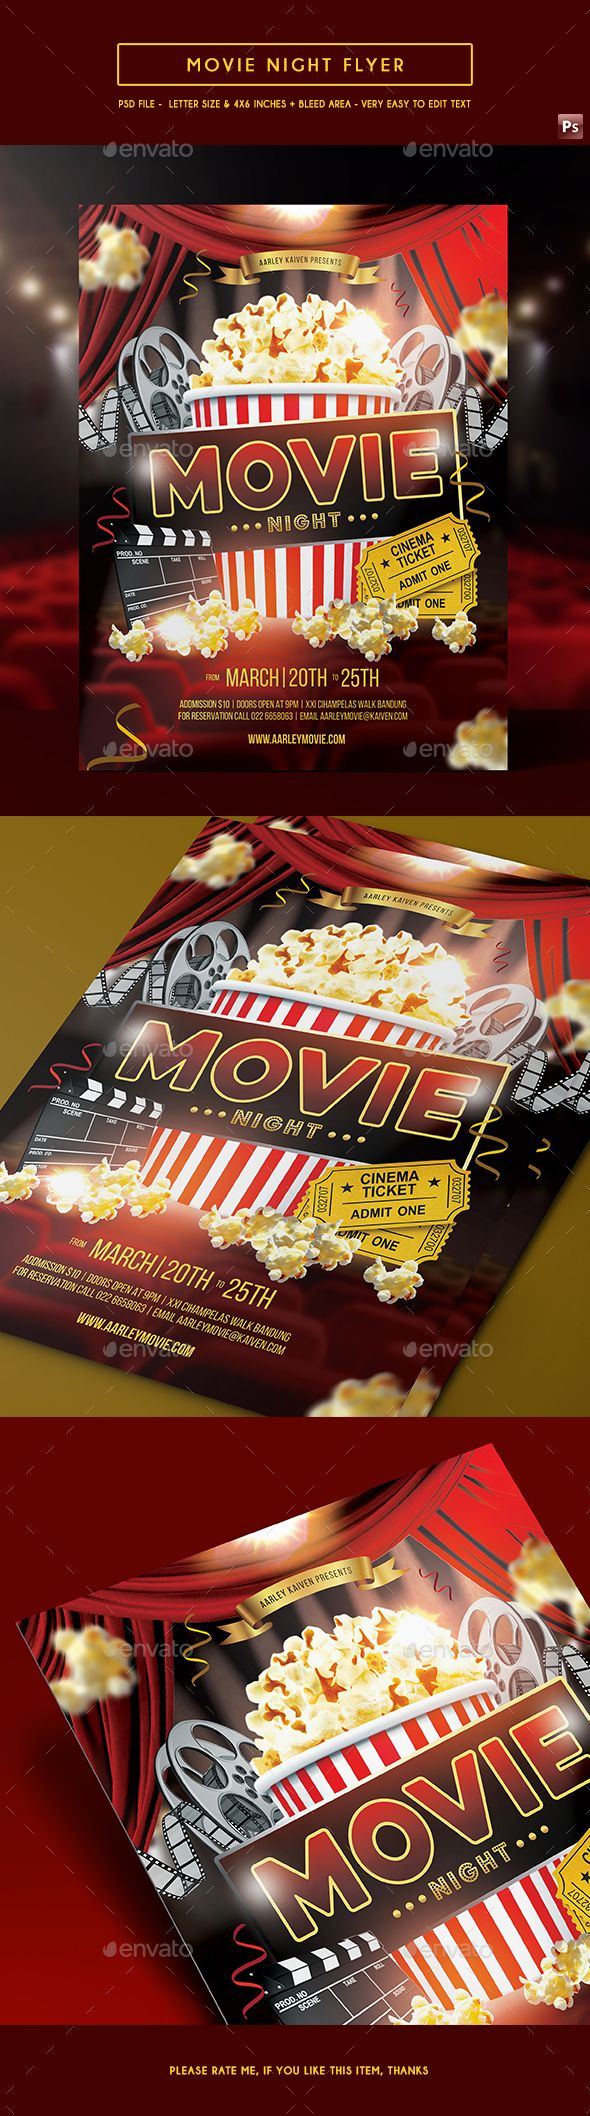 Movie Night Flyer  Flyer Template Template And Psd Templates